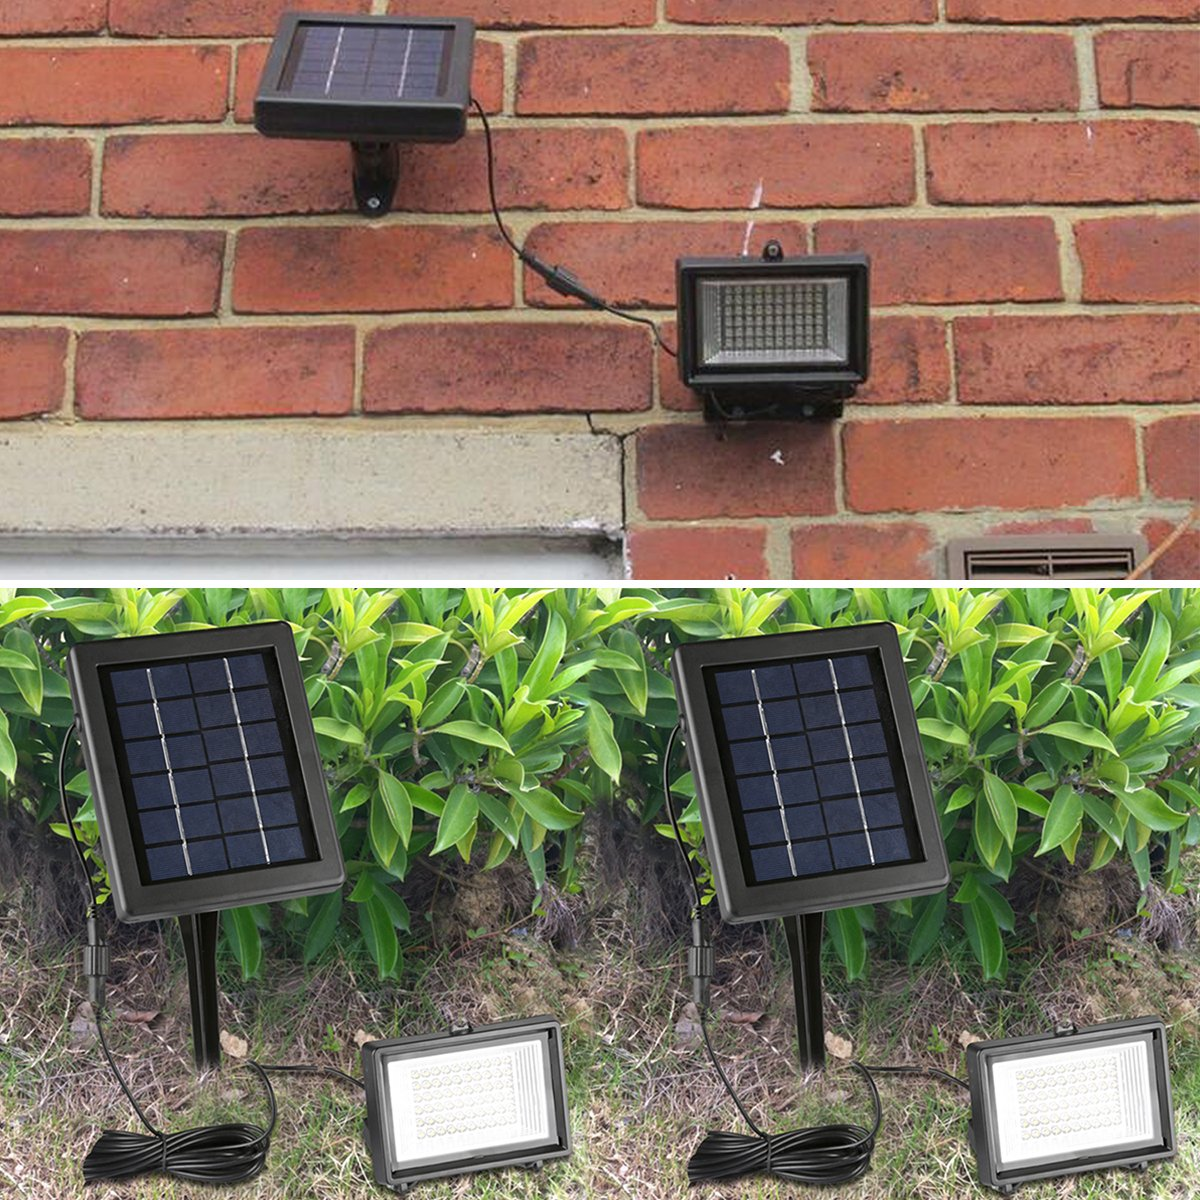 Findyouled Solar Flood Lights Outdoor Landscape Running Underground Electrical Wire On Garage Light Wiring Lighting 60led 120lumen Cast Aluminium Wall In Ground 2 1 Adjustable With A 164ft Cable